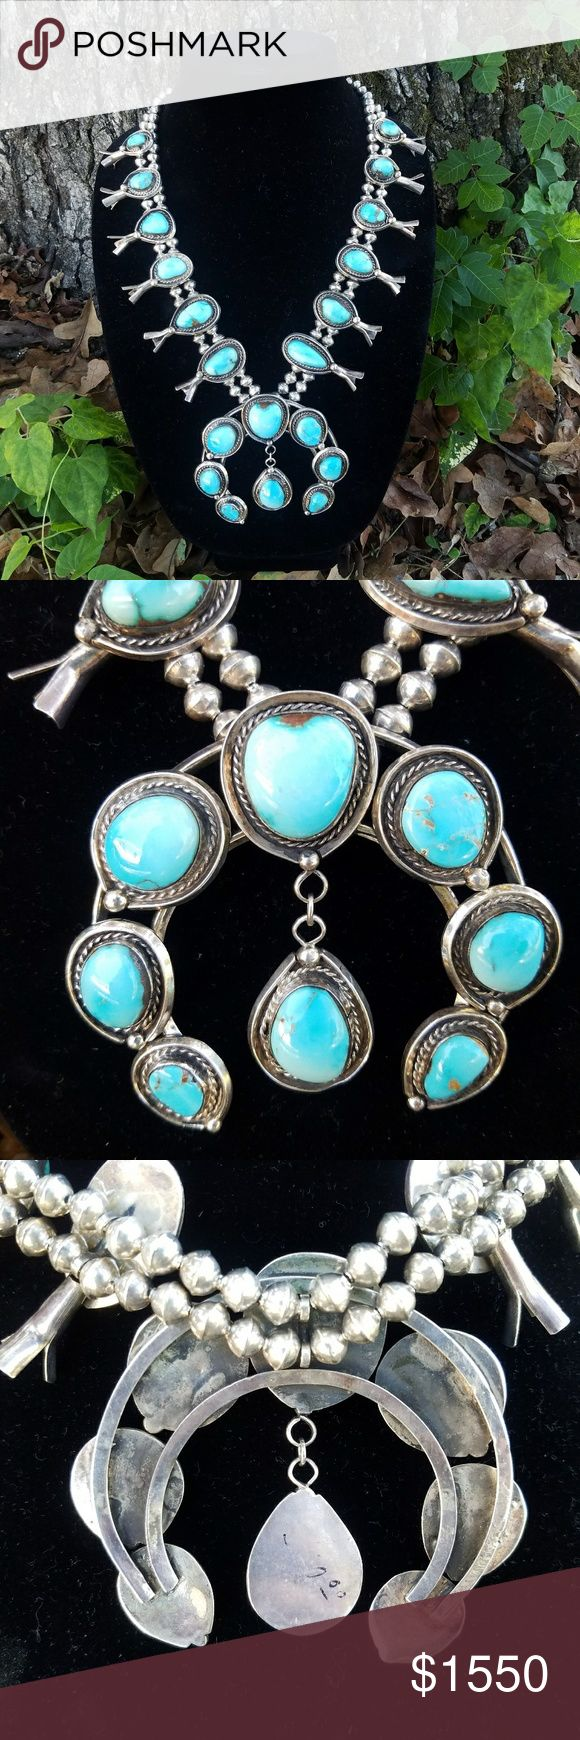 """Huge Old Pawn Sterling Squash Blossom Huge Old Pawn Sterling Silver Squash Blossom, #8 Turquoise, 215g, 28"""" long, naja 3.5""""x3.5""""  Follow me at 5D Western Vintage on IG, layaway available. Jewelry Necklaces"""